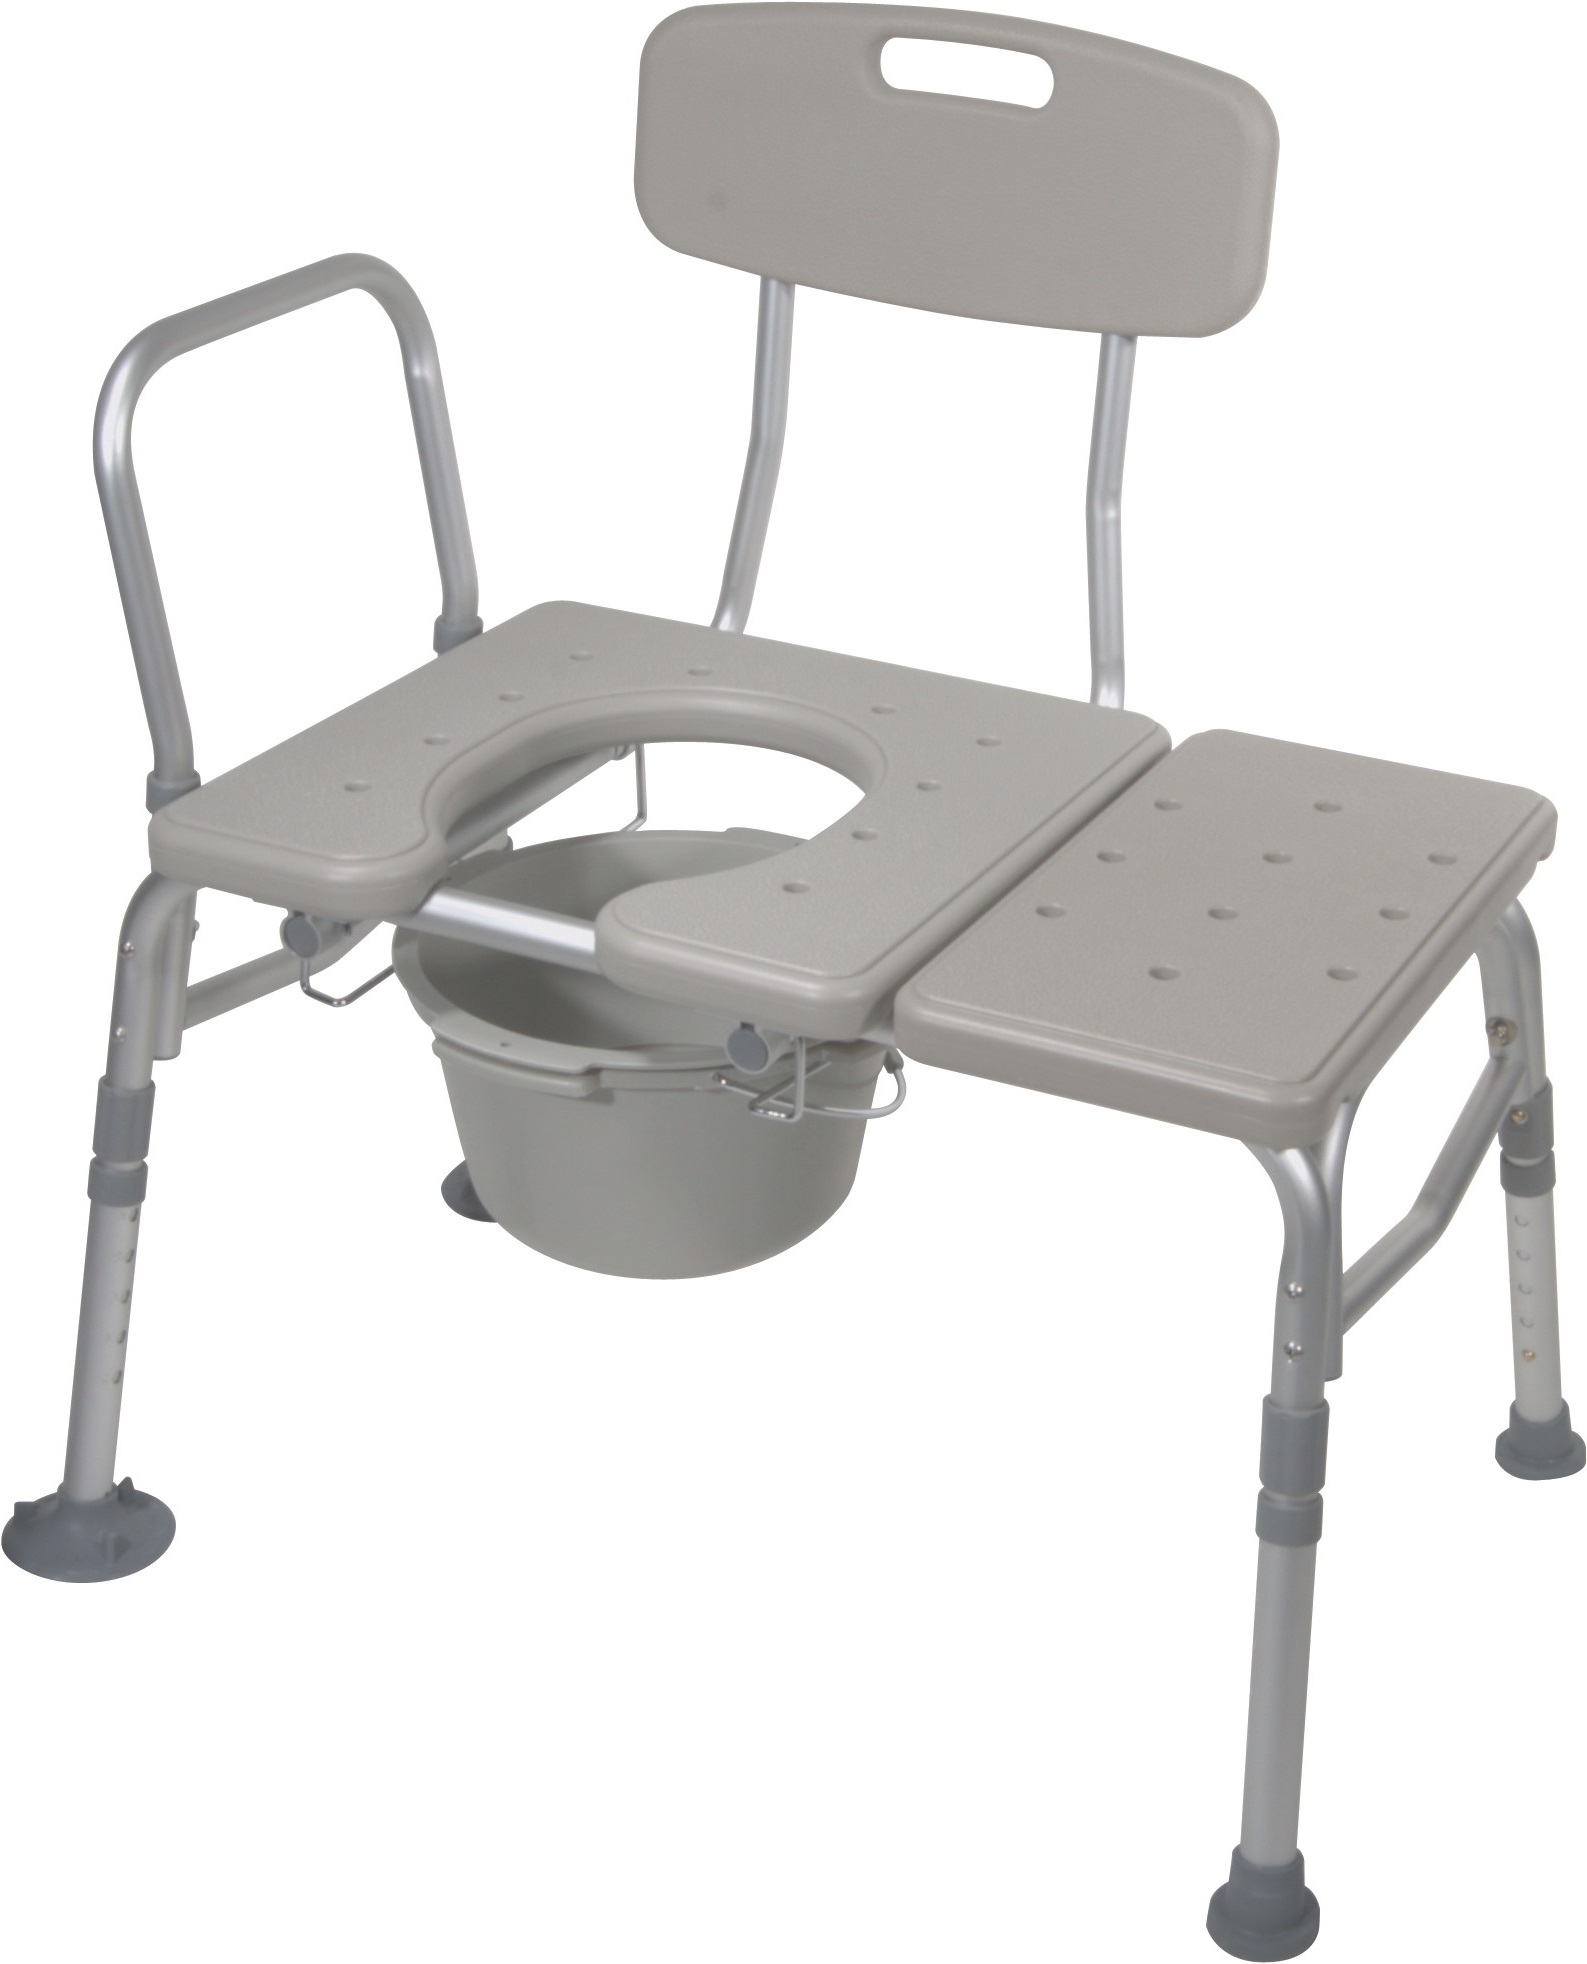 Tub Transfer Bench With Commode